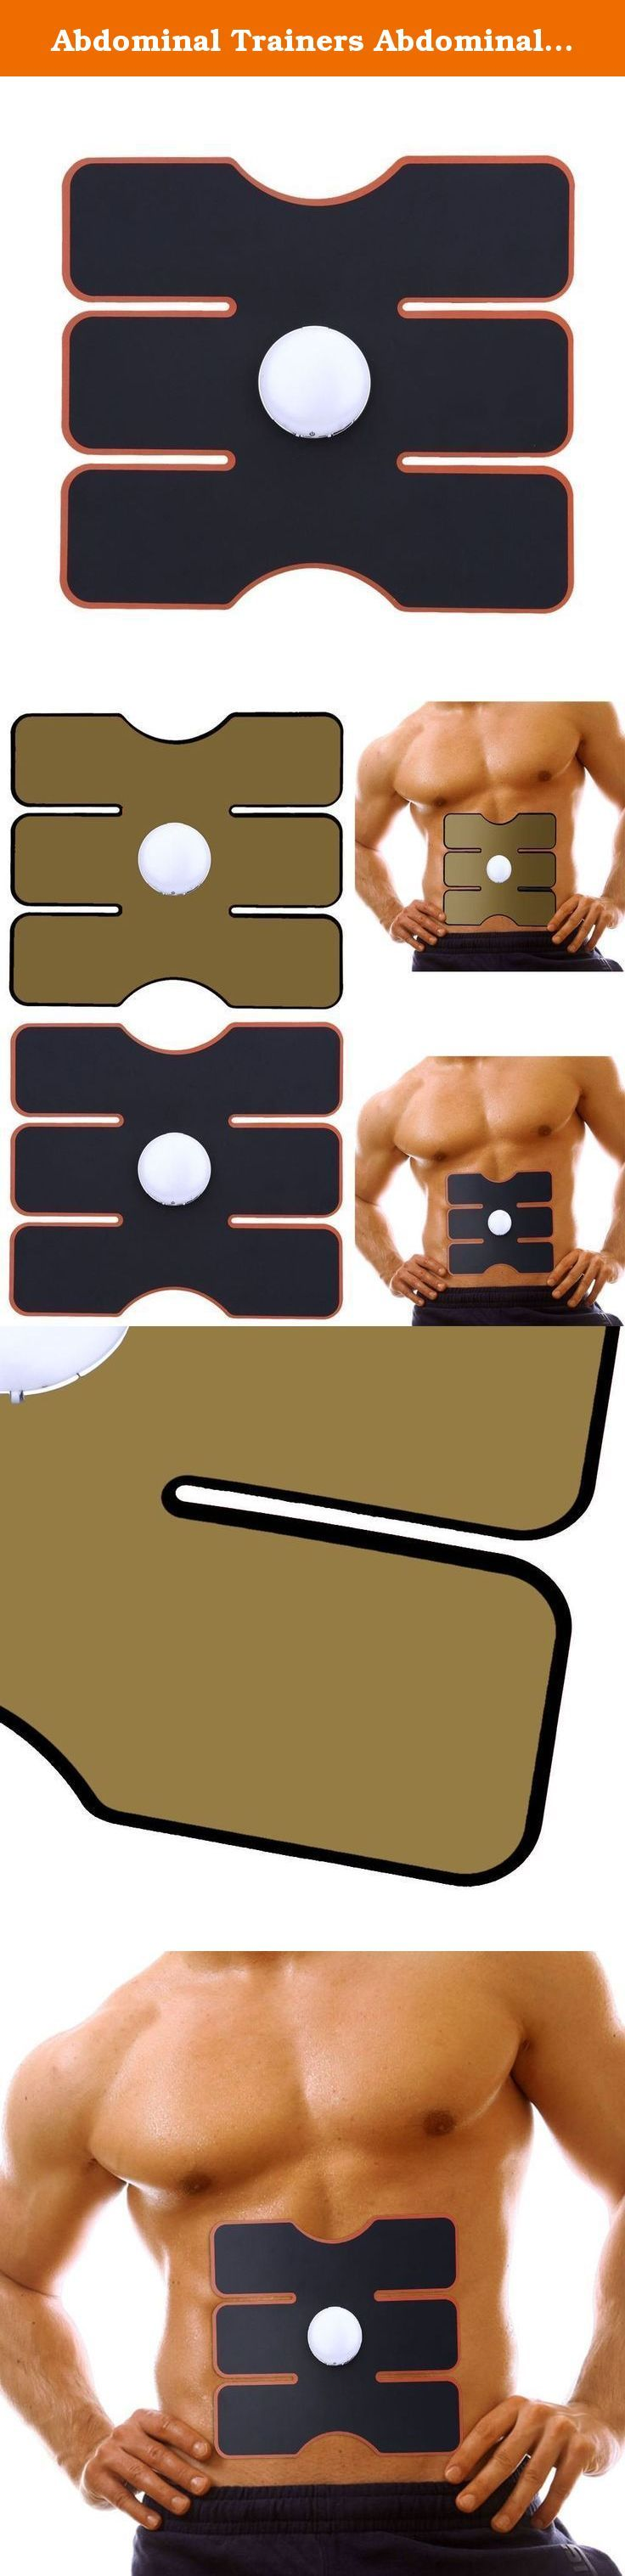 Abdominal Trainers Abdominal Muscle Fitness Six Pack Trainer Body Shaping Lazy Exercise Machine fitness equipment for Sit / stand New Black. Abdominal Trainers Abdominal Muscle Fitness Six Pack Trainer Body Shaping Lazy Exercise Machine fitness equipment for Sit / stand New Black#523.